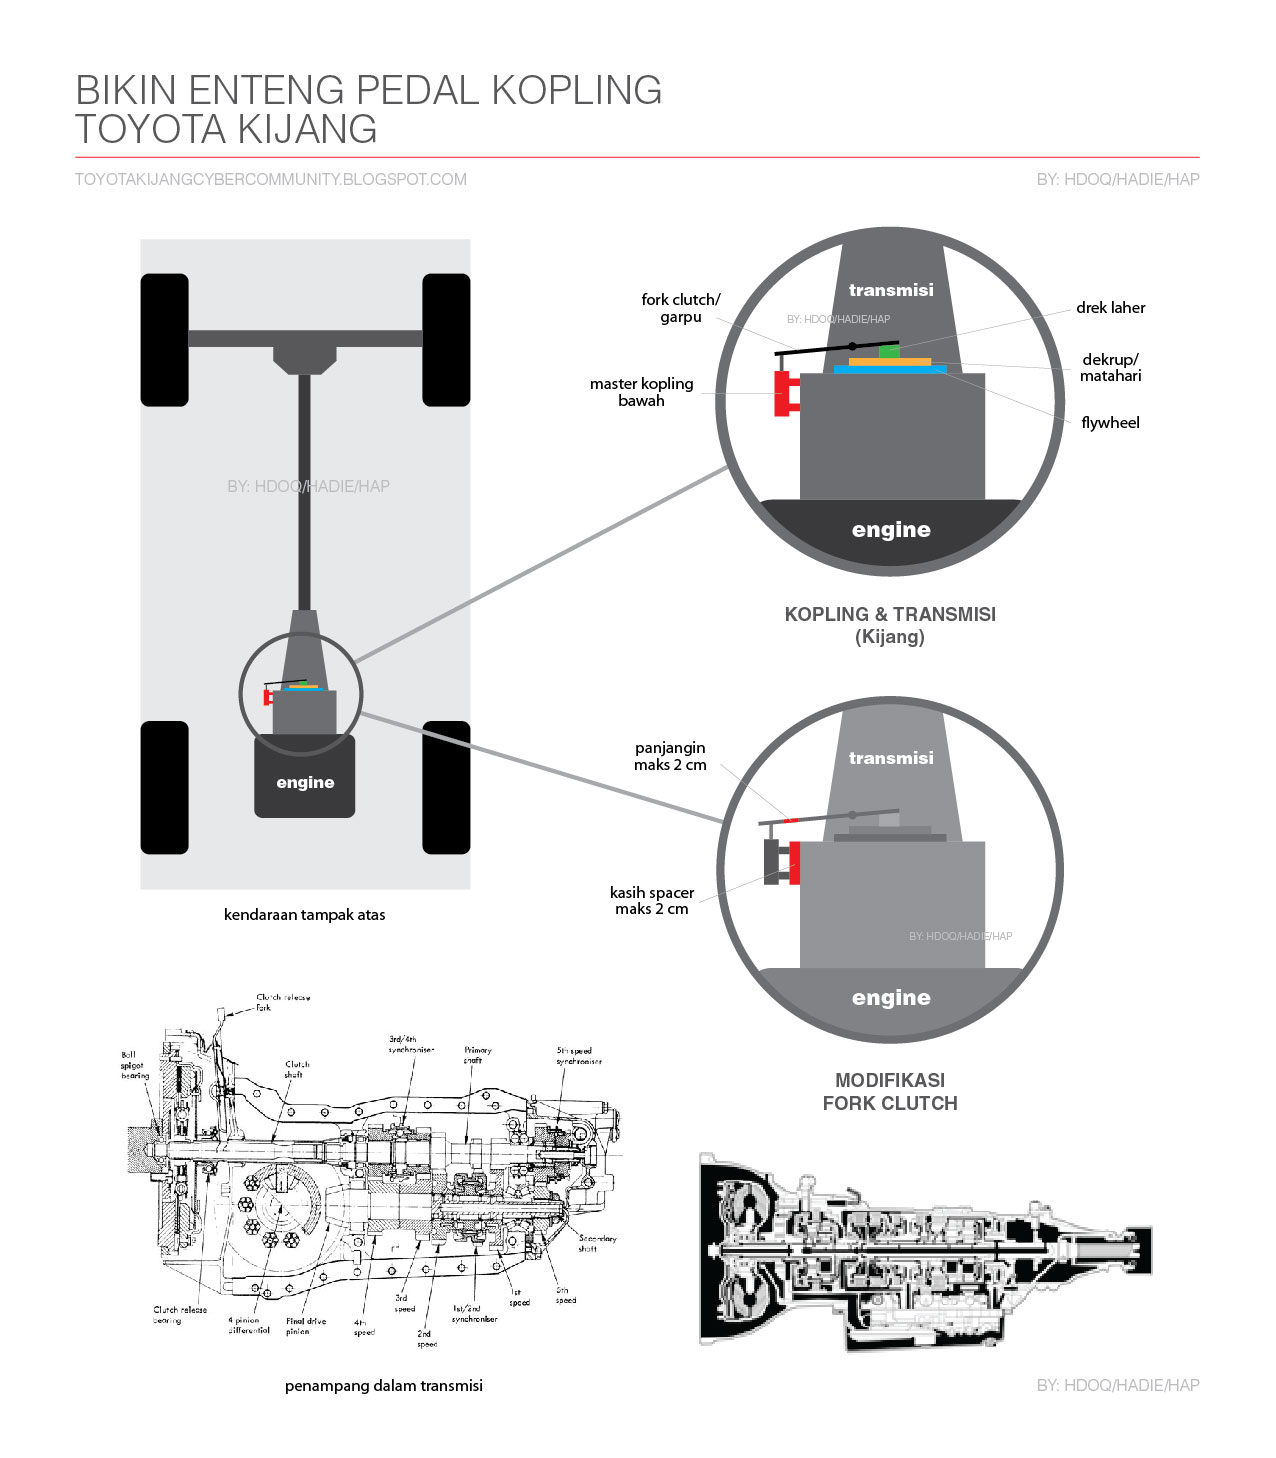 Wiring diagram mobil toyota kijang jzgreentown wiring diagram toyota kijang wiring diagram with asfbconference2016 Image collections